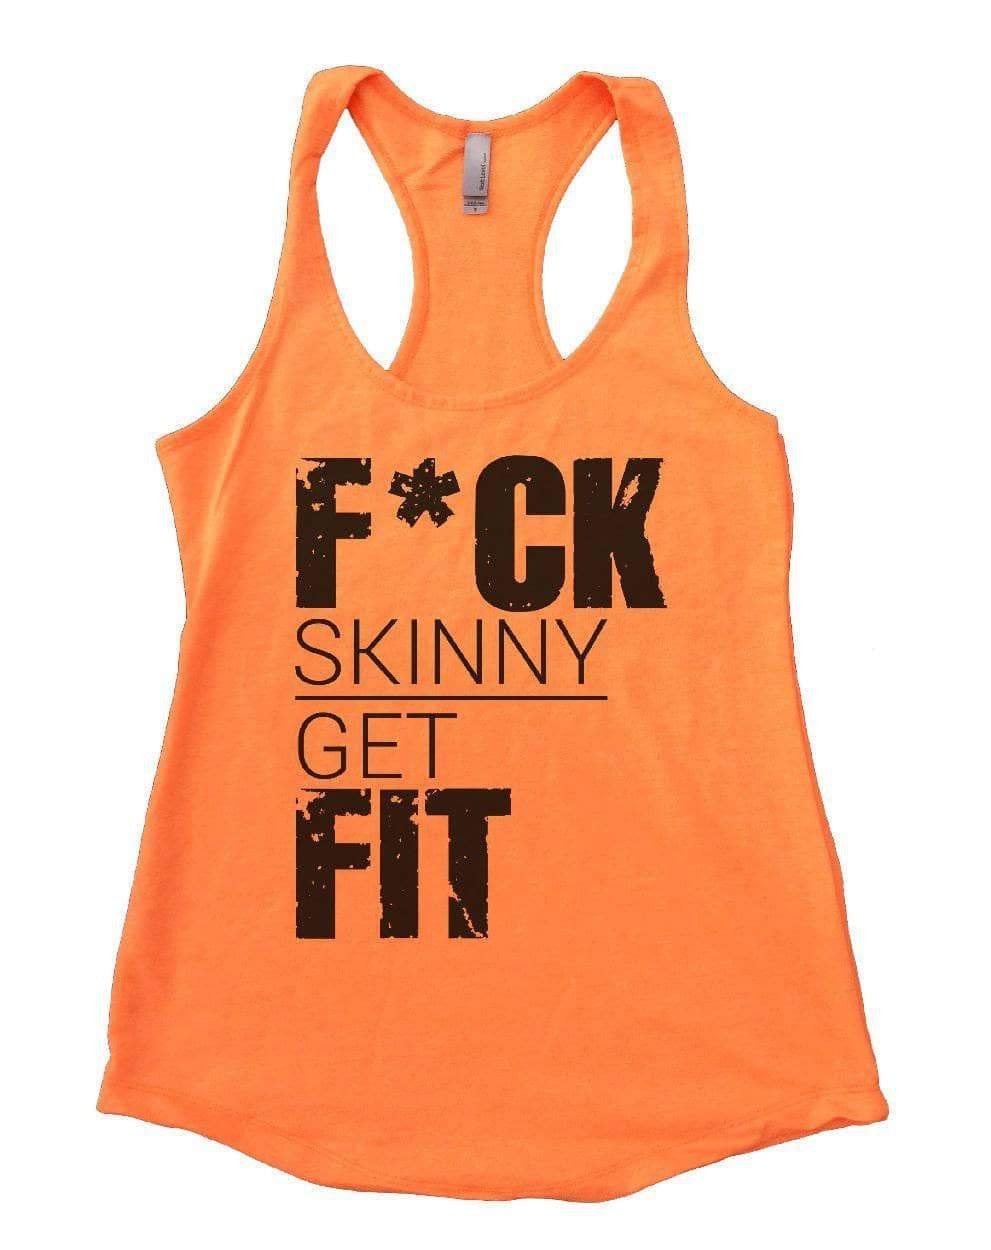 FUCK SKINNY GET FIT Womens Workout Tank Top Small Womens Tank Tops Neon Orange